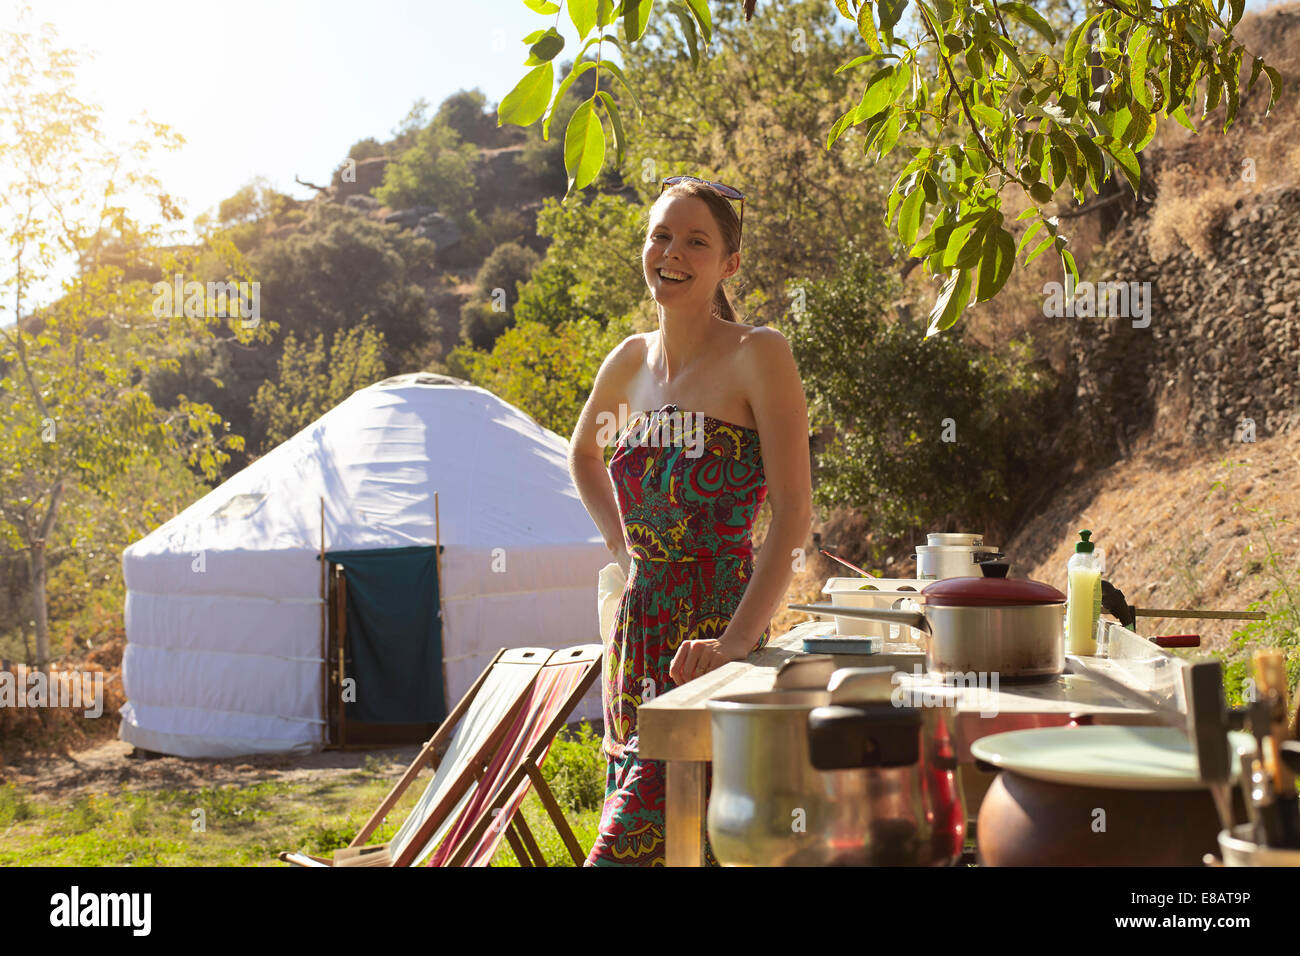 Young woman preparing food whilst glamping, Sierra Nevada, Andalucia Granada, Spain - Stock Image